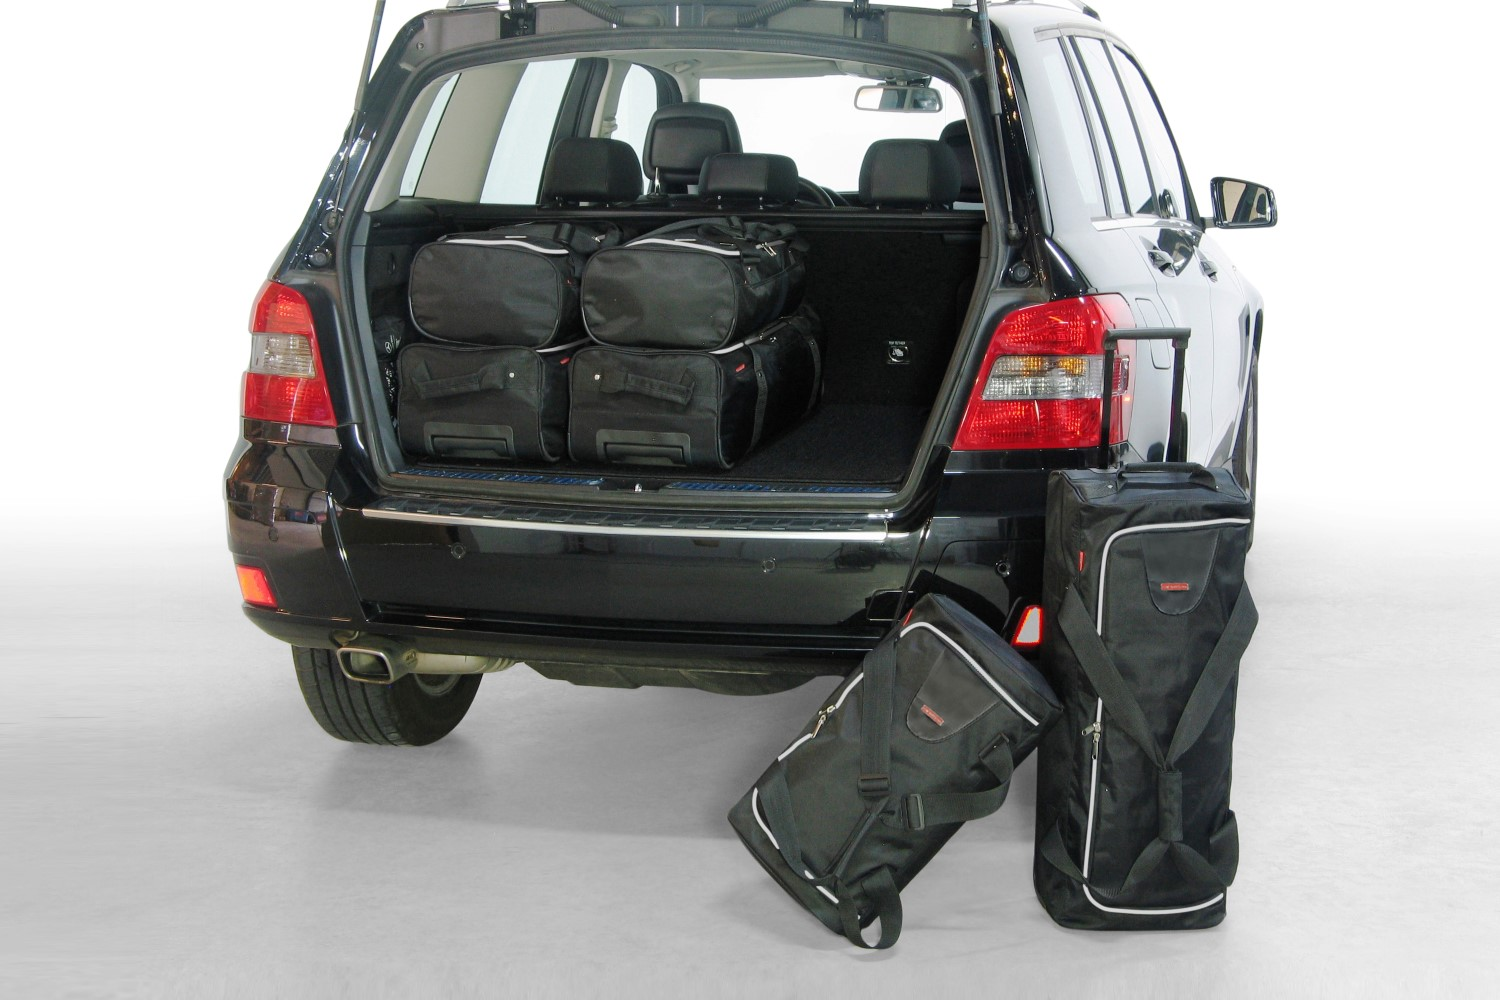 Glk mercedes benz glk x204 2008 2015 car bags travel bags for Mercedes benz backpack